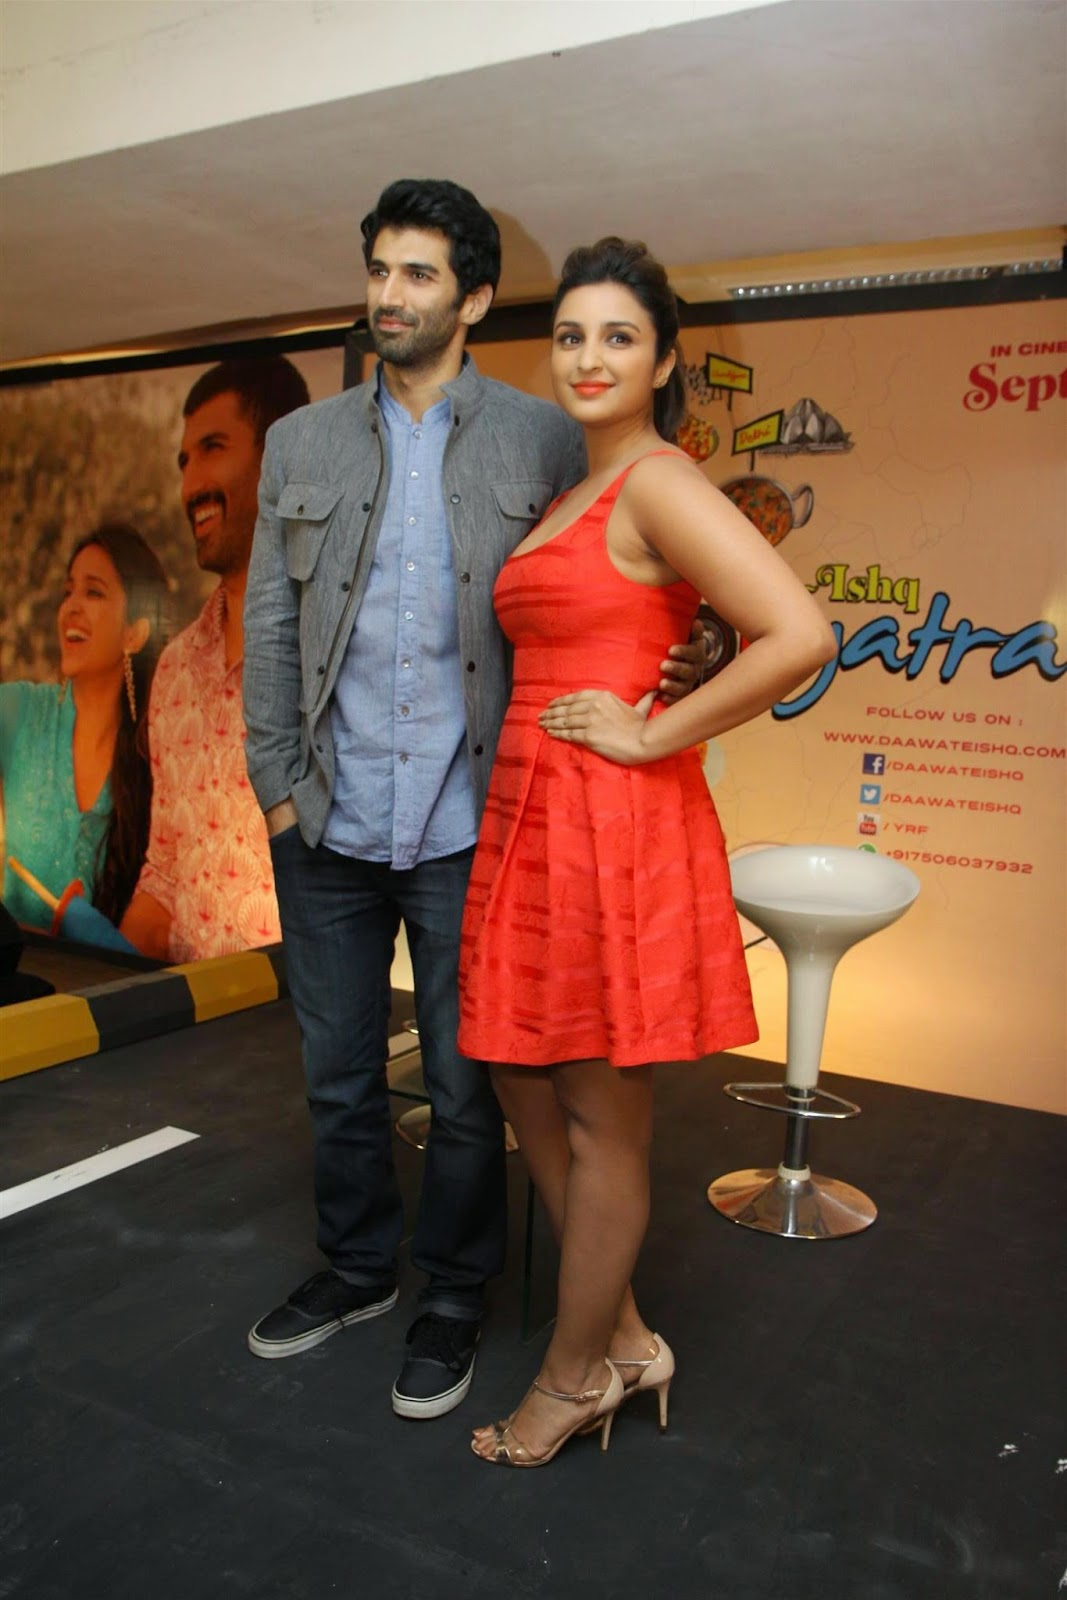 Shame! Parineeti chopra hot legs nice